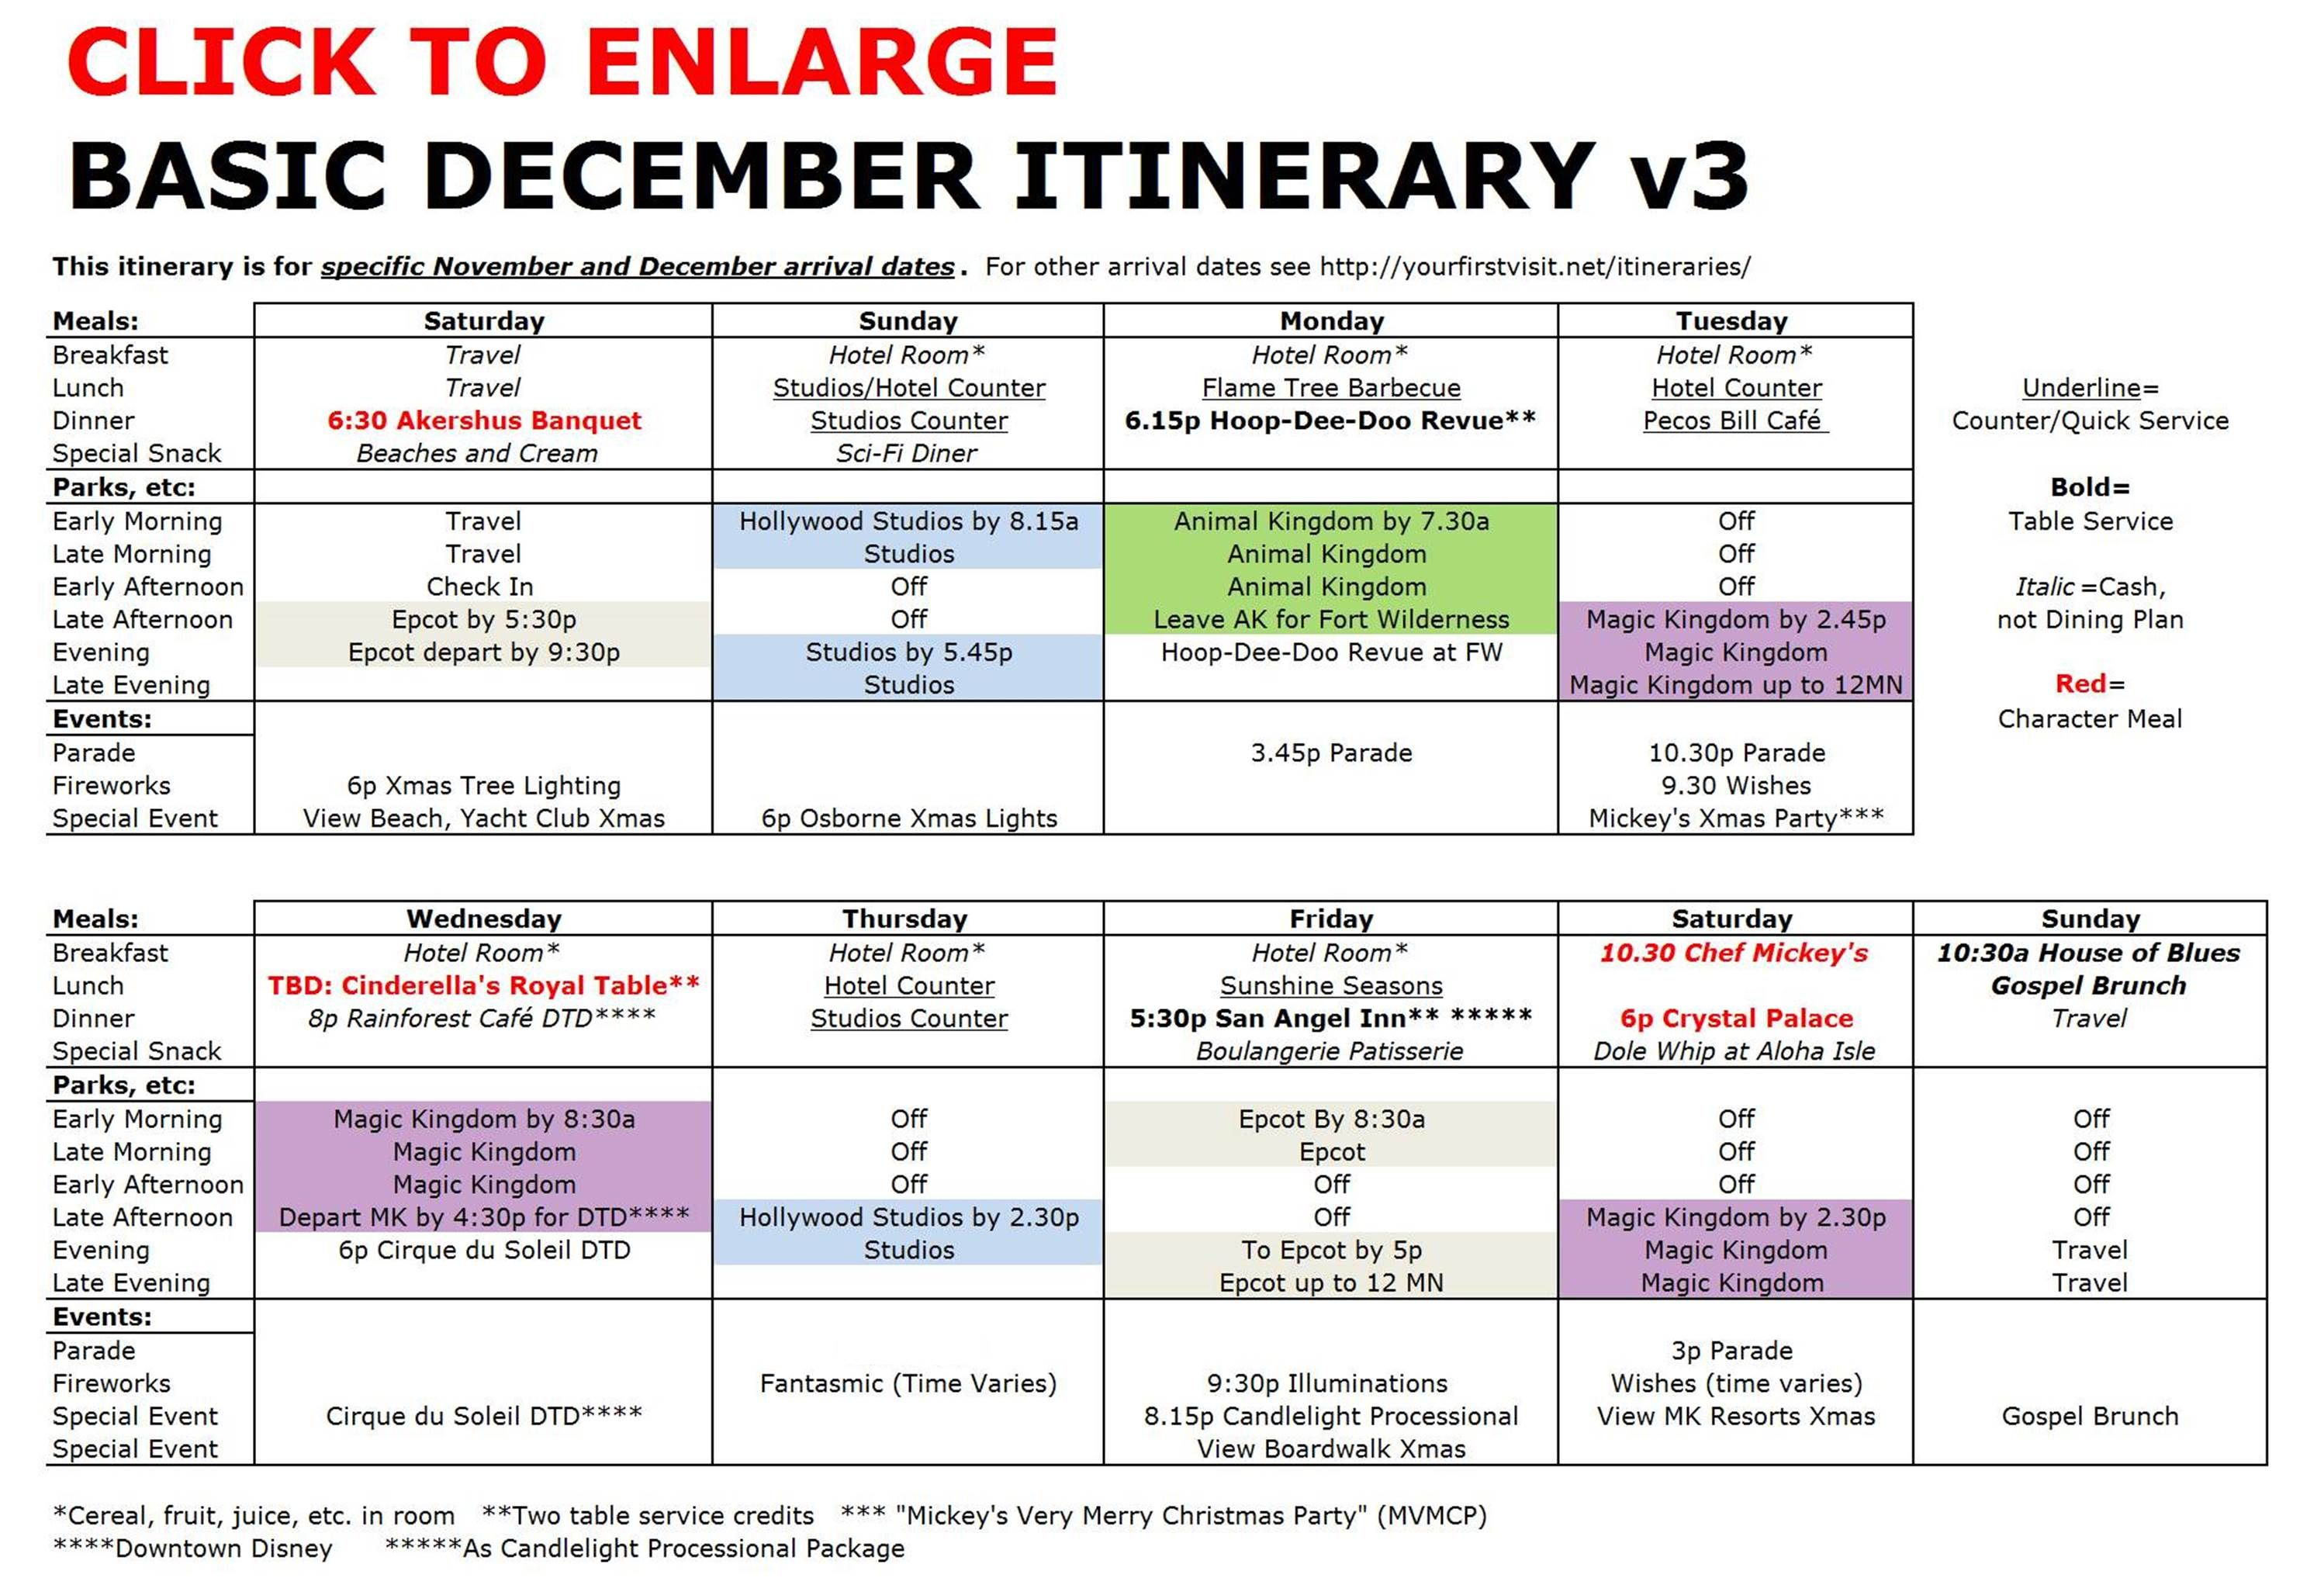 trip planning itinerary template - disney world basic december itinerary v3 2 996